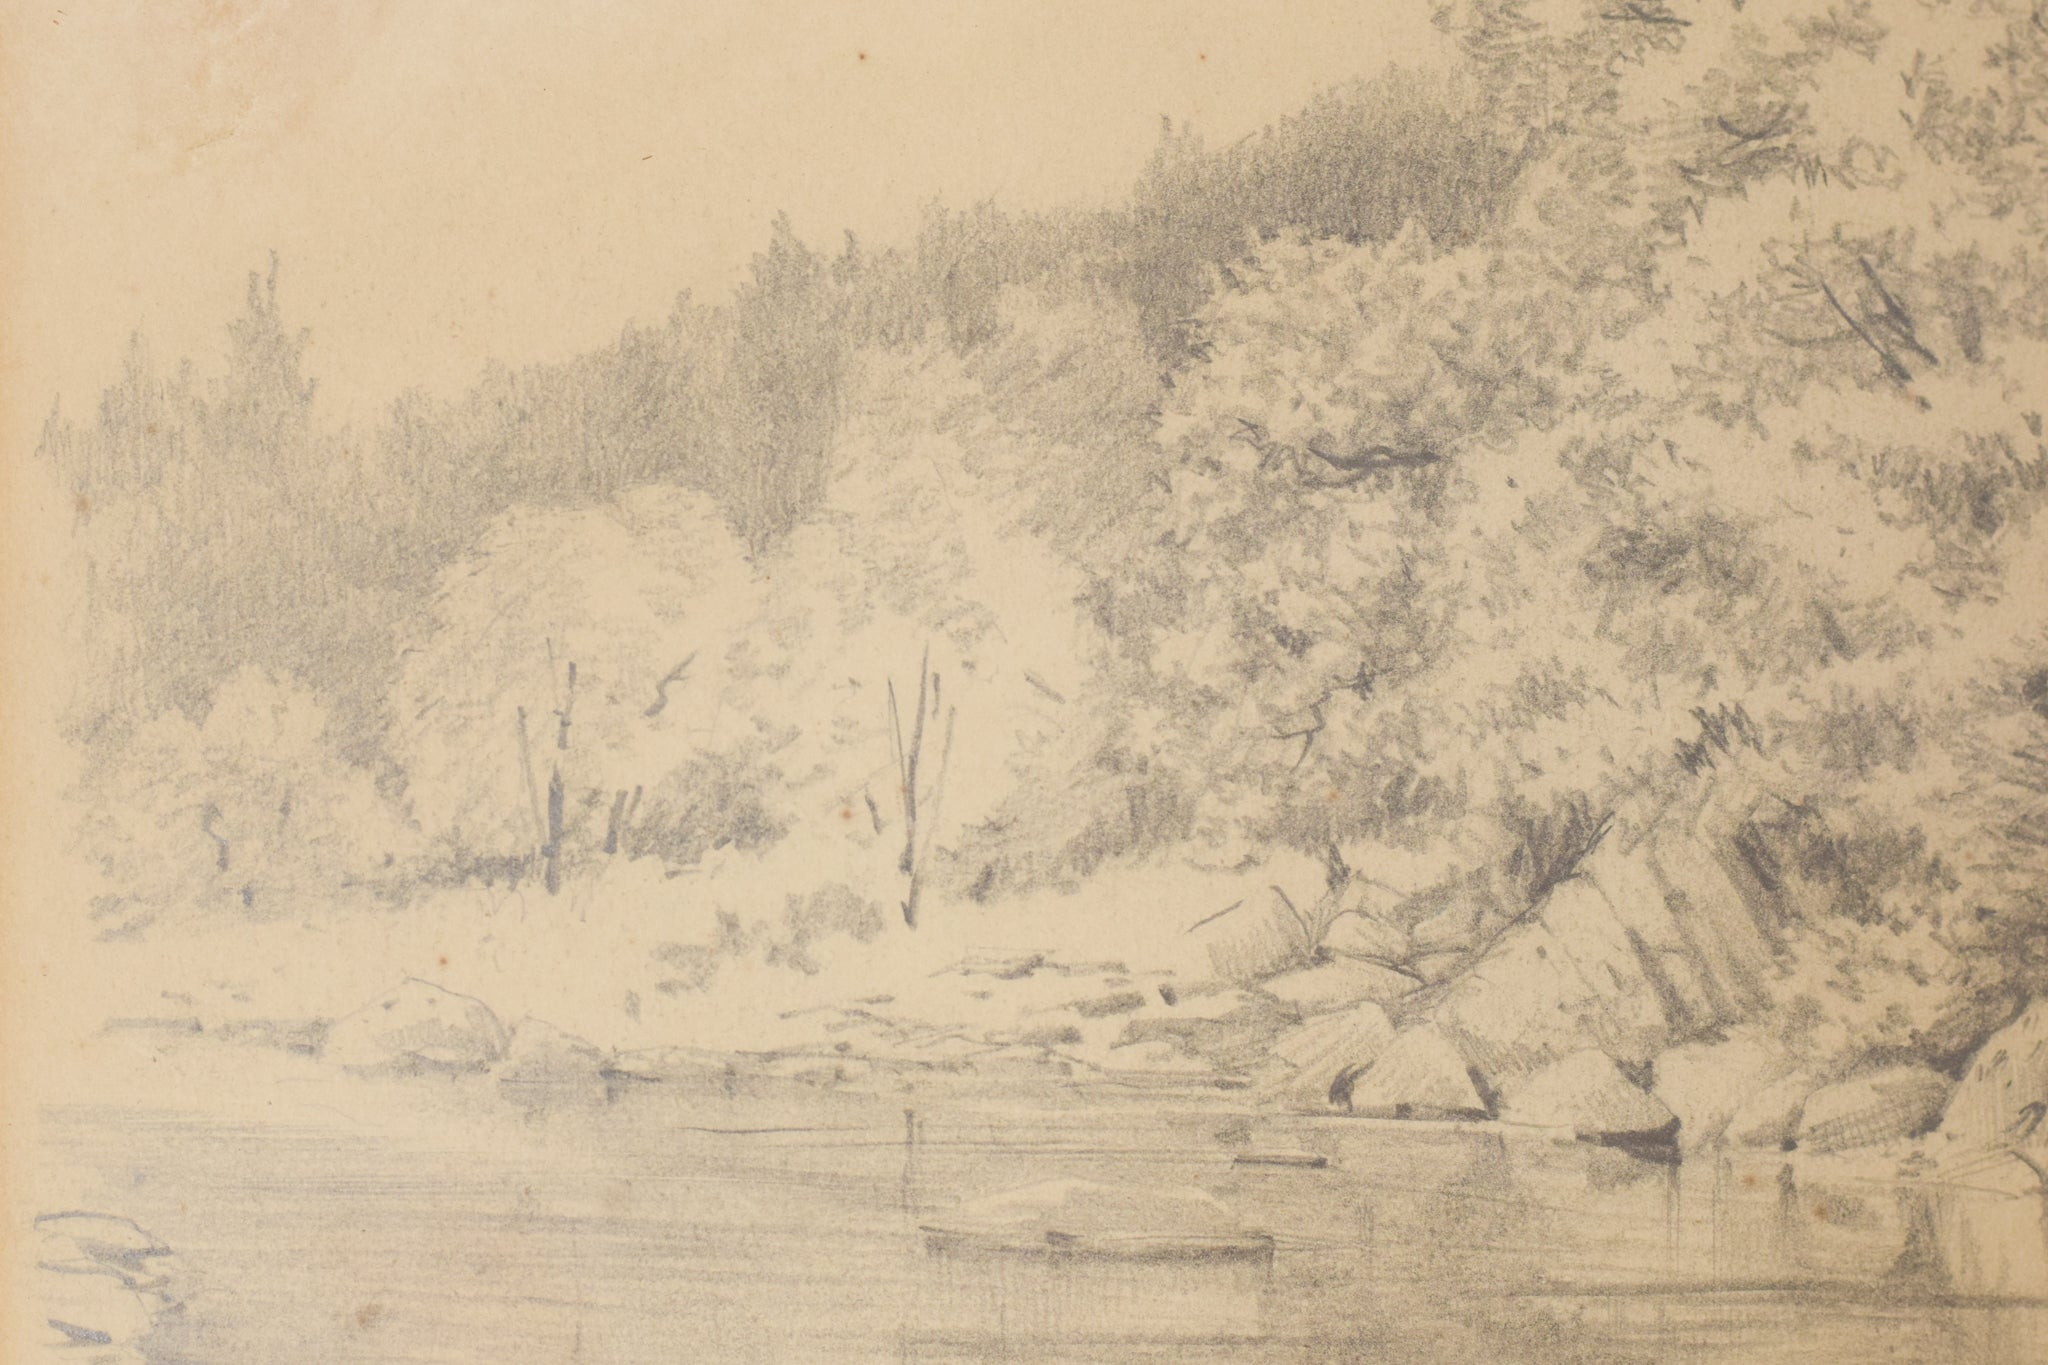 'On The Cree' Landscape Drawing of a River_Detail